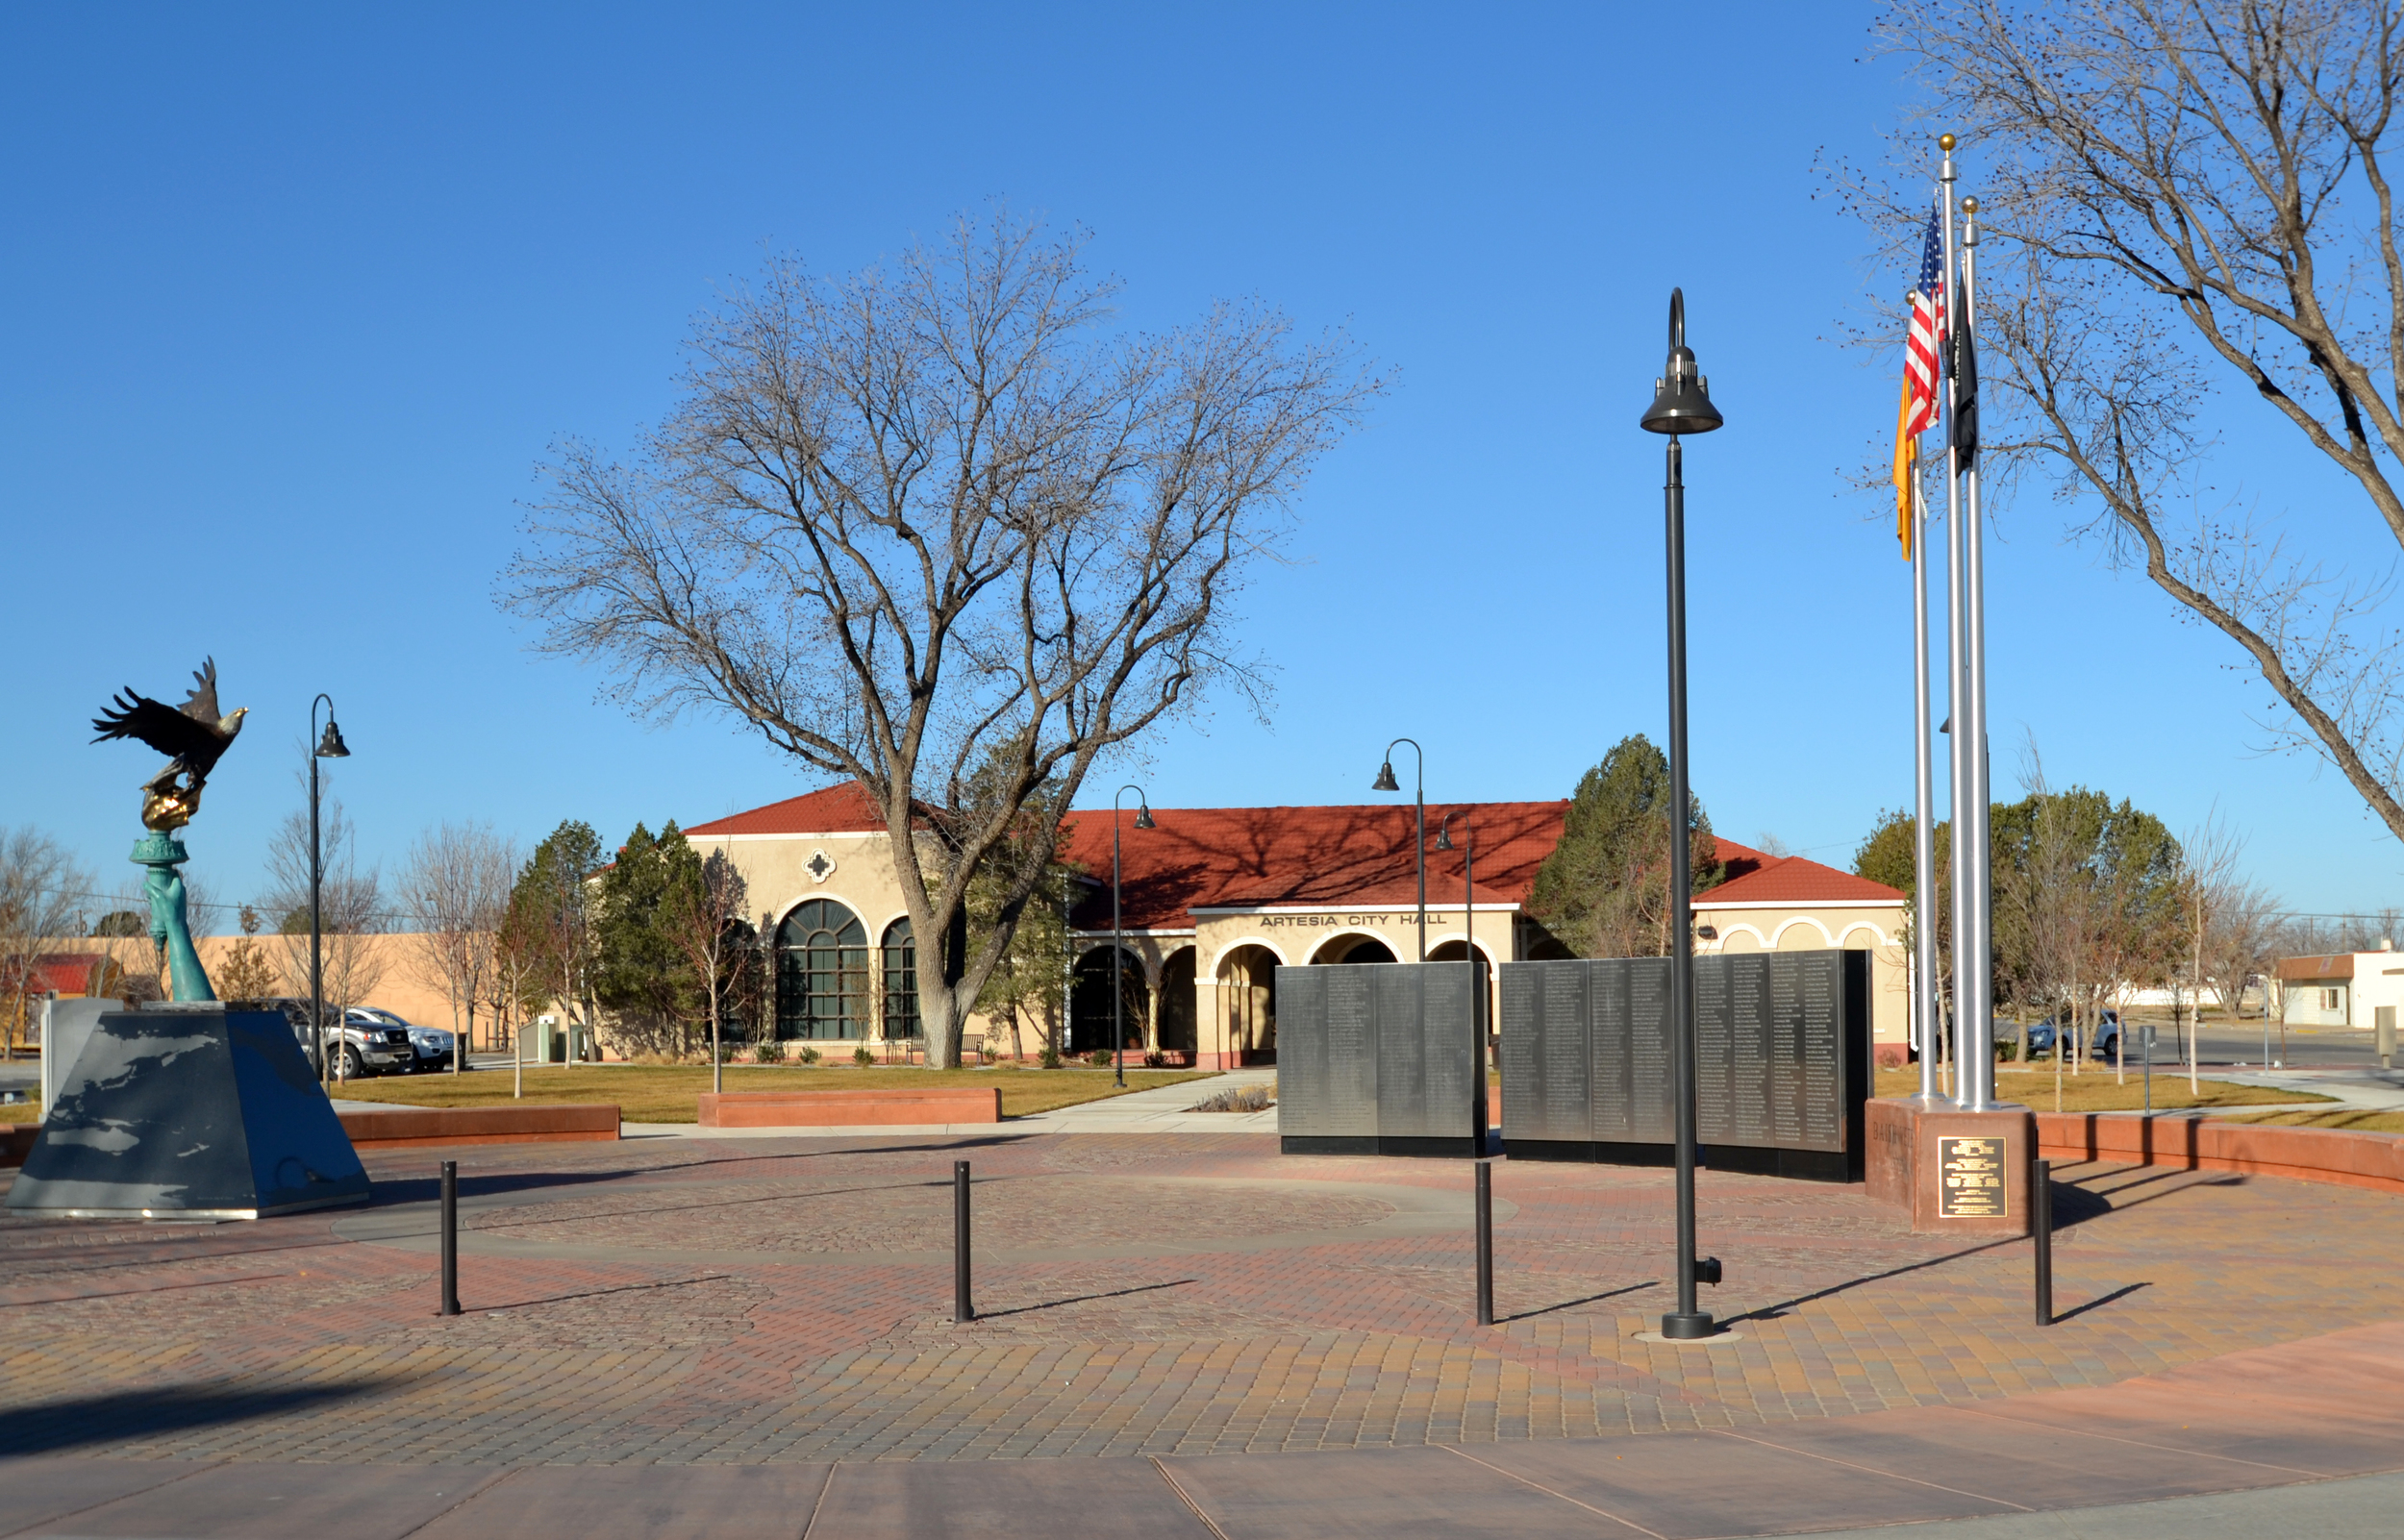 Memorial plaza with public art